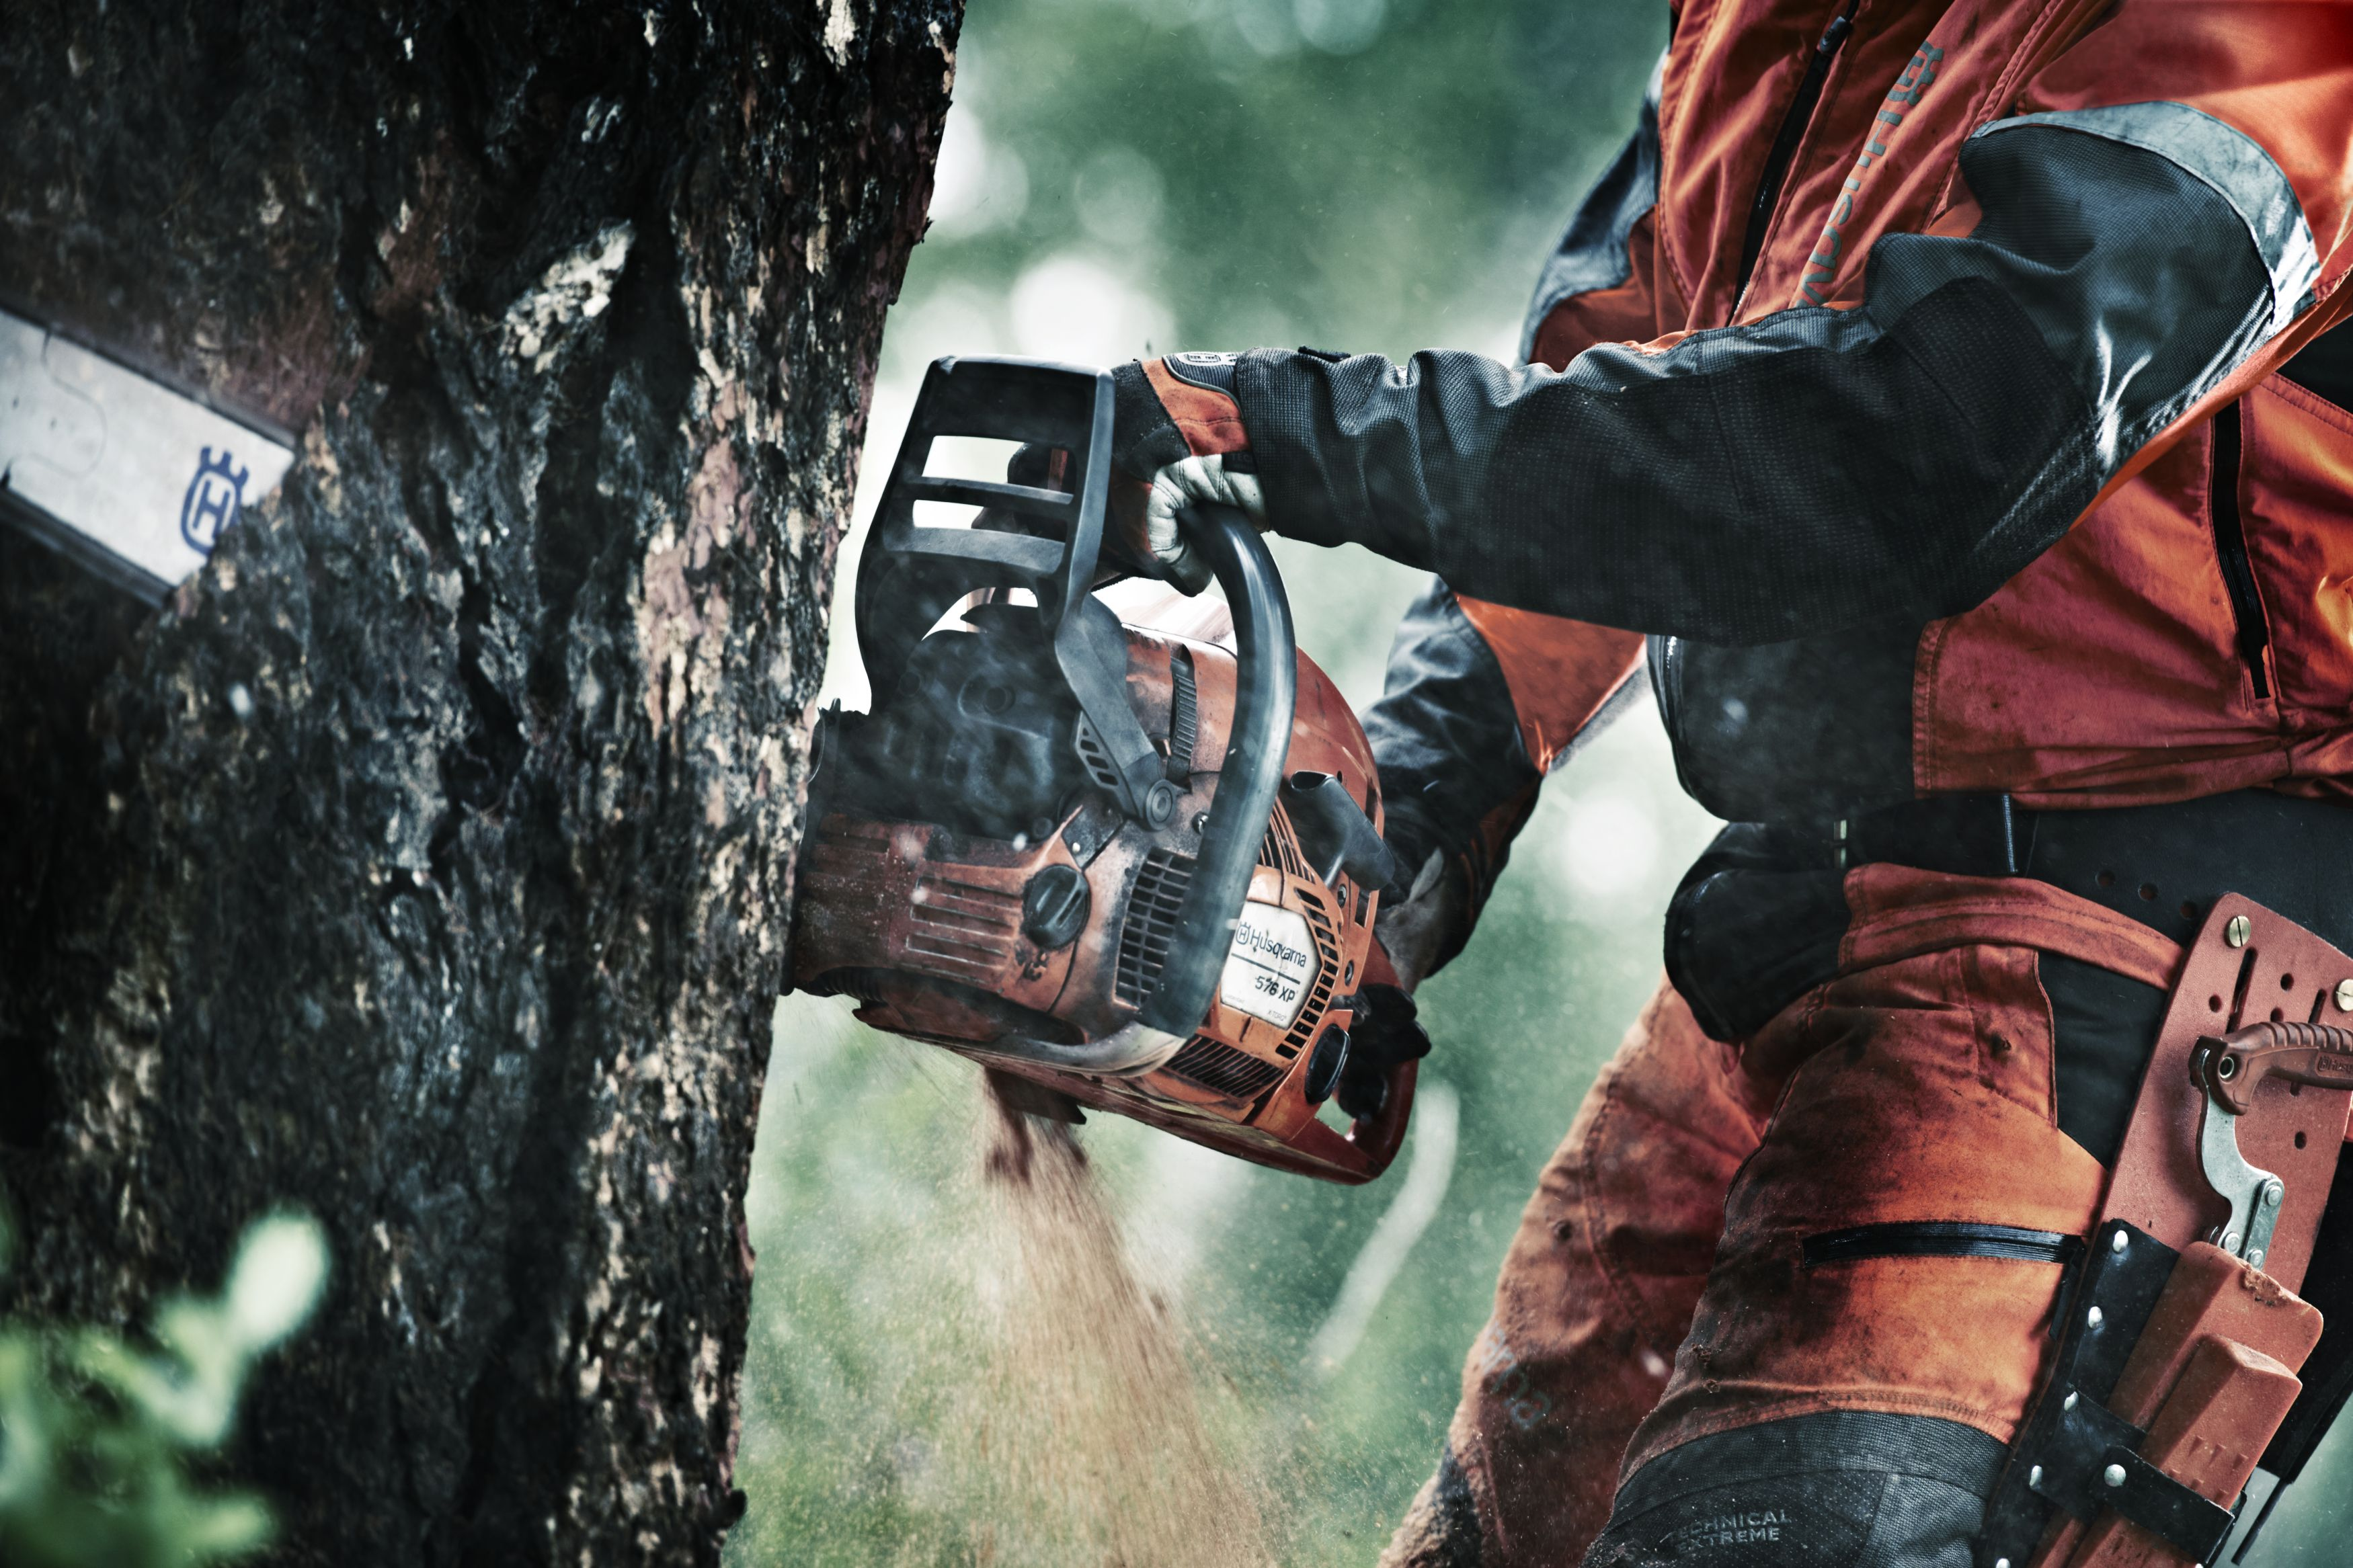 Husqvarna Chainsaws